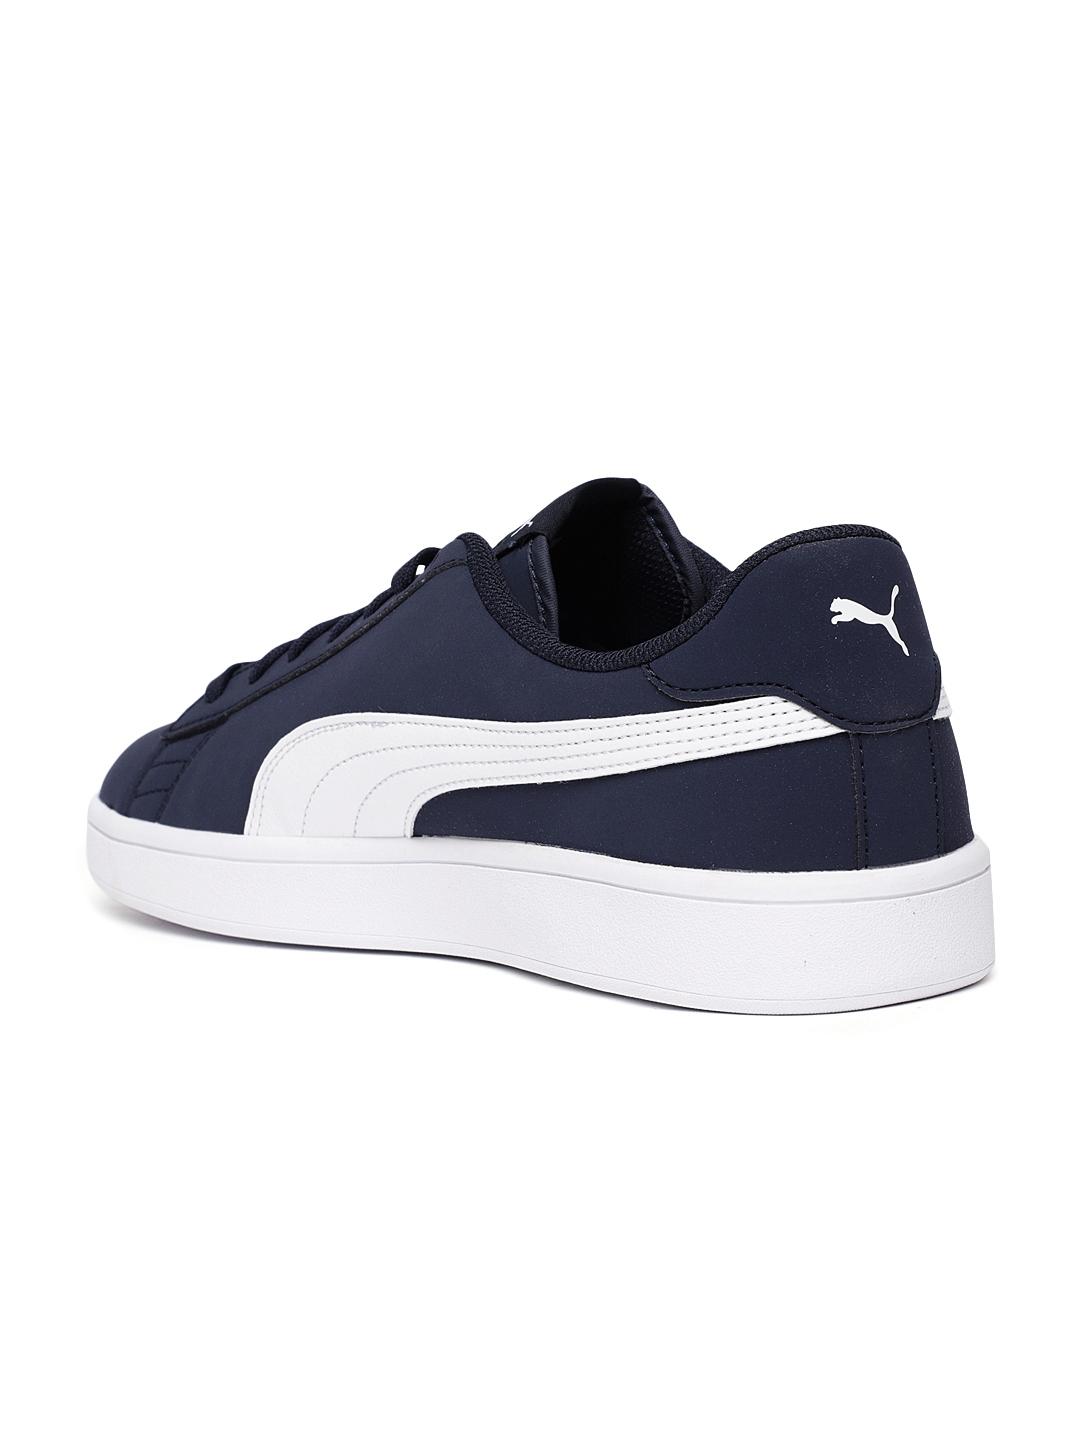 8b17468b7aa2 Buy Puma Unisex Navy Blue Smash V2 Buck Sneakers - Casual Shoes for ...